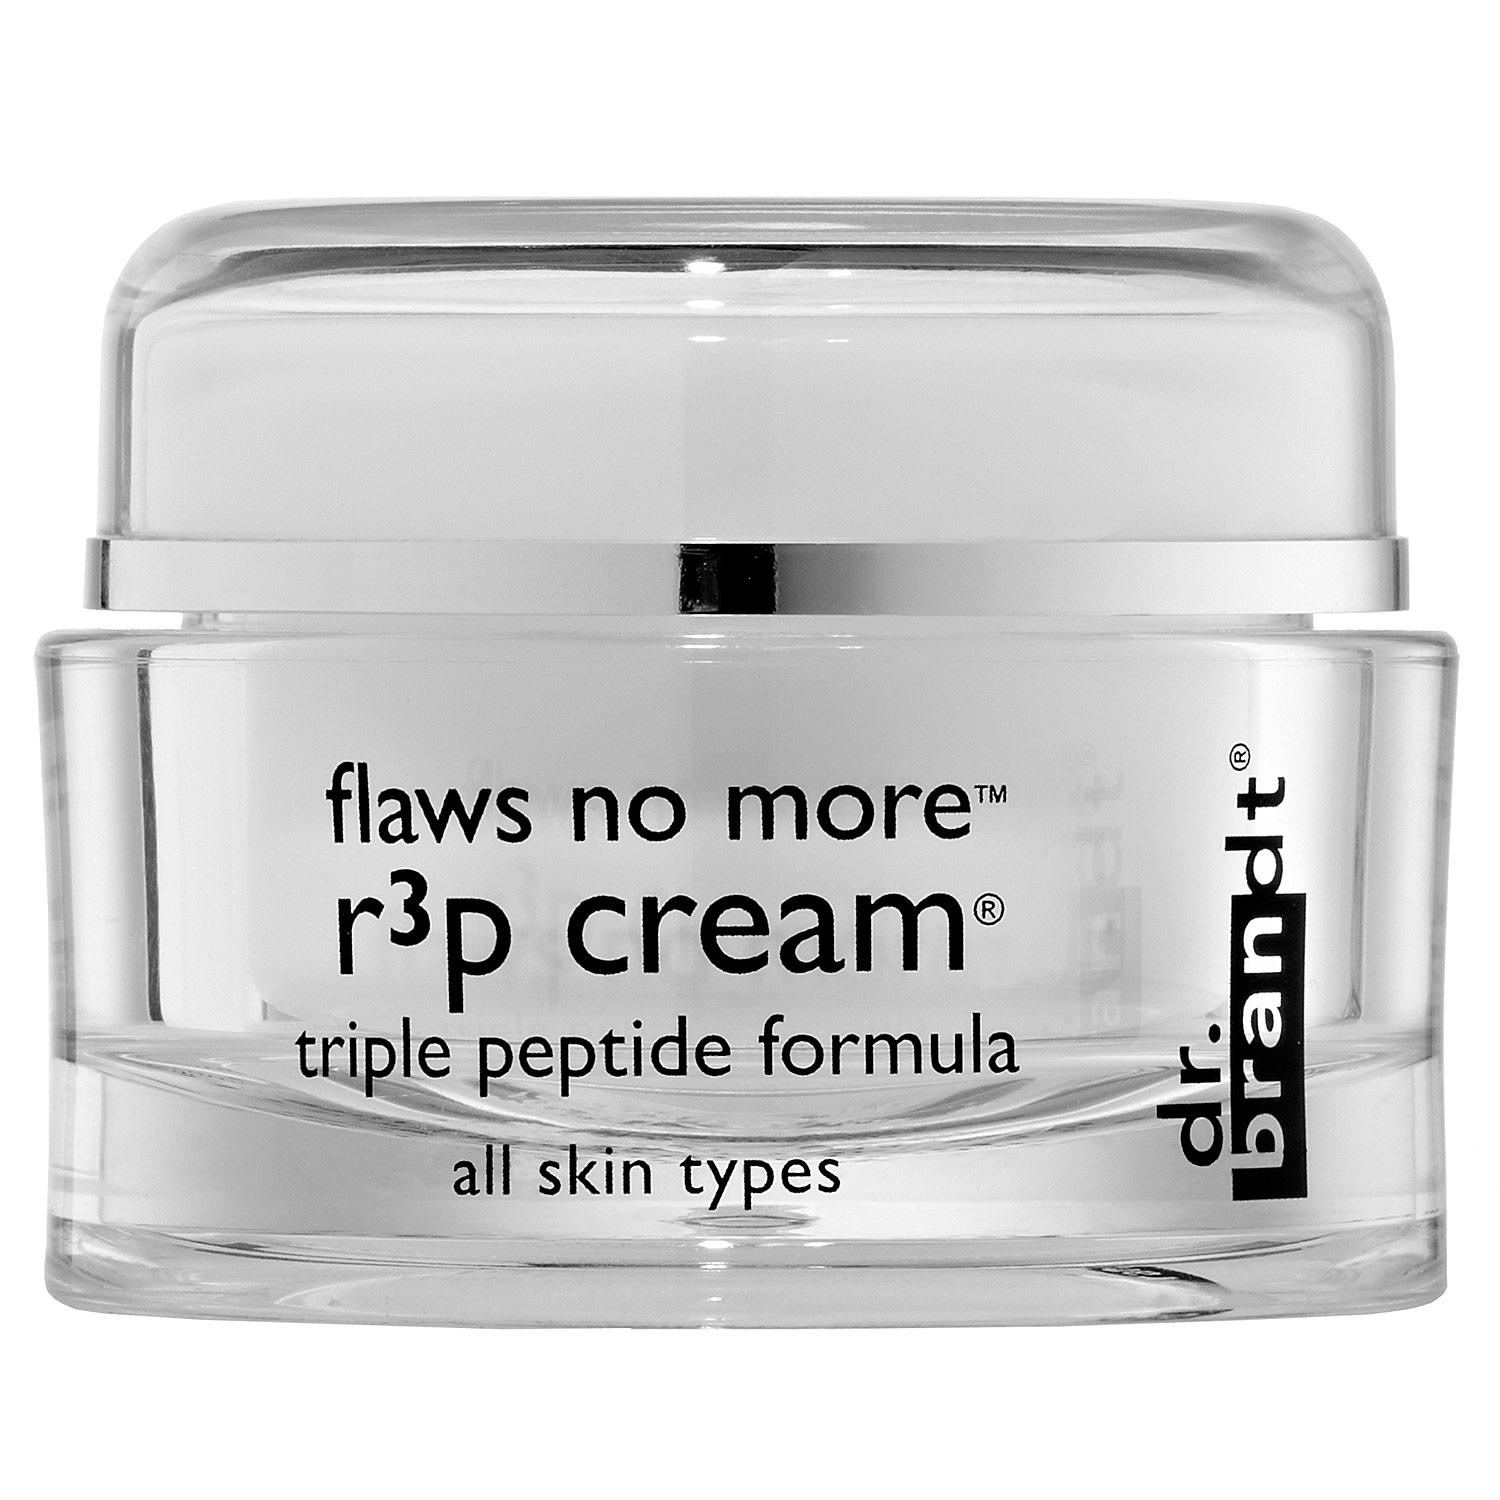 flaws no more® r³p cream